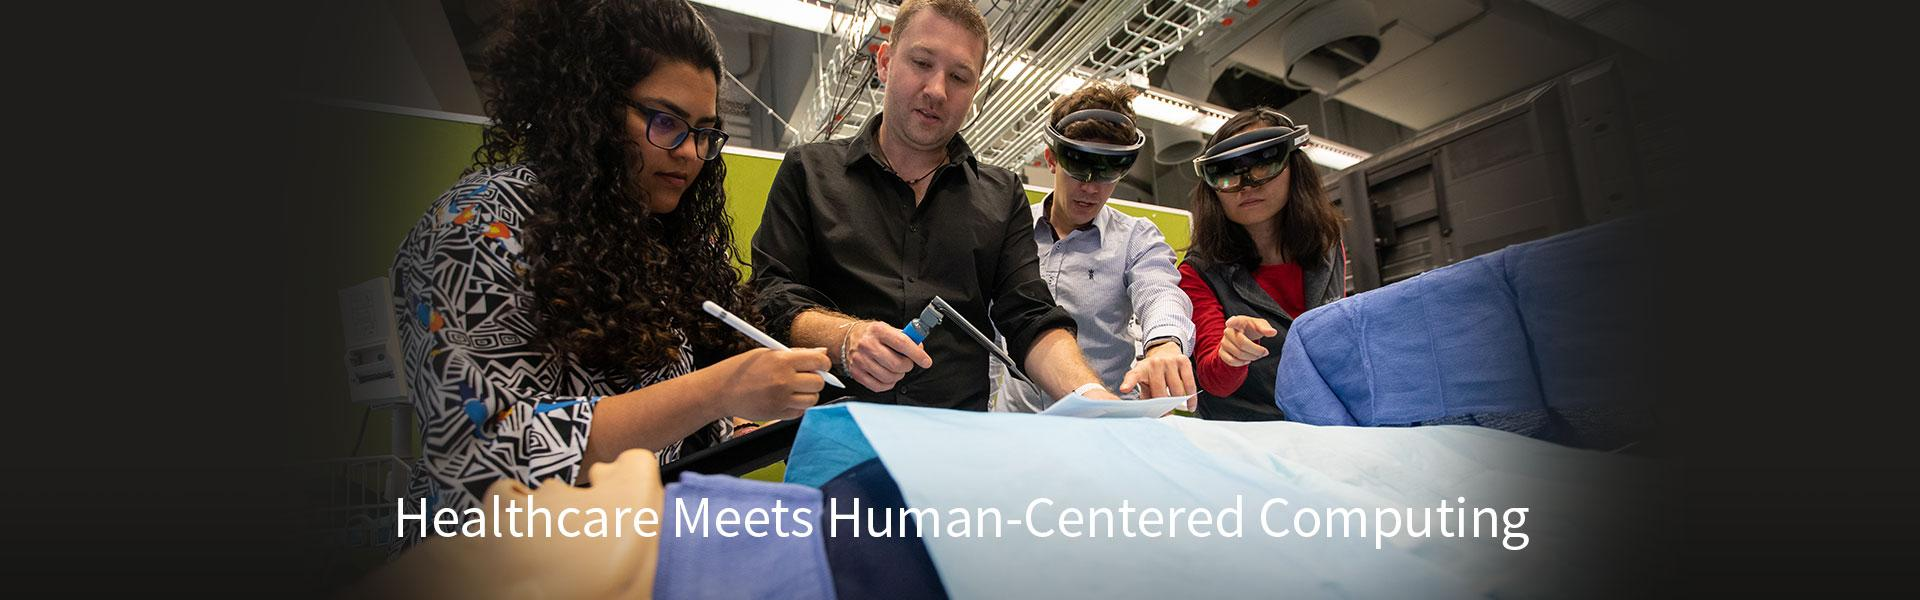 Healthcare Meets Human-Centered Computing